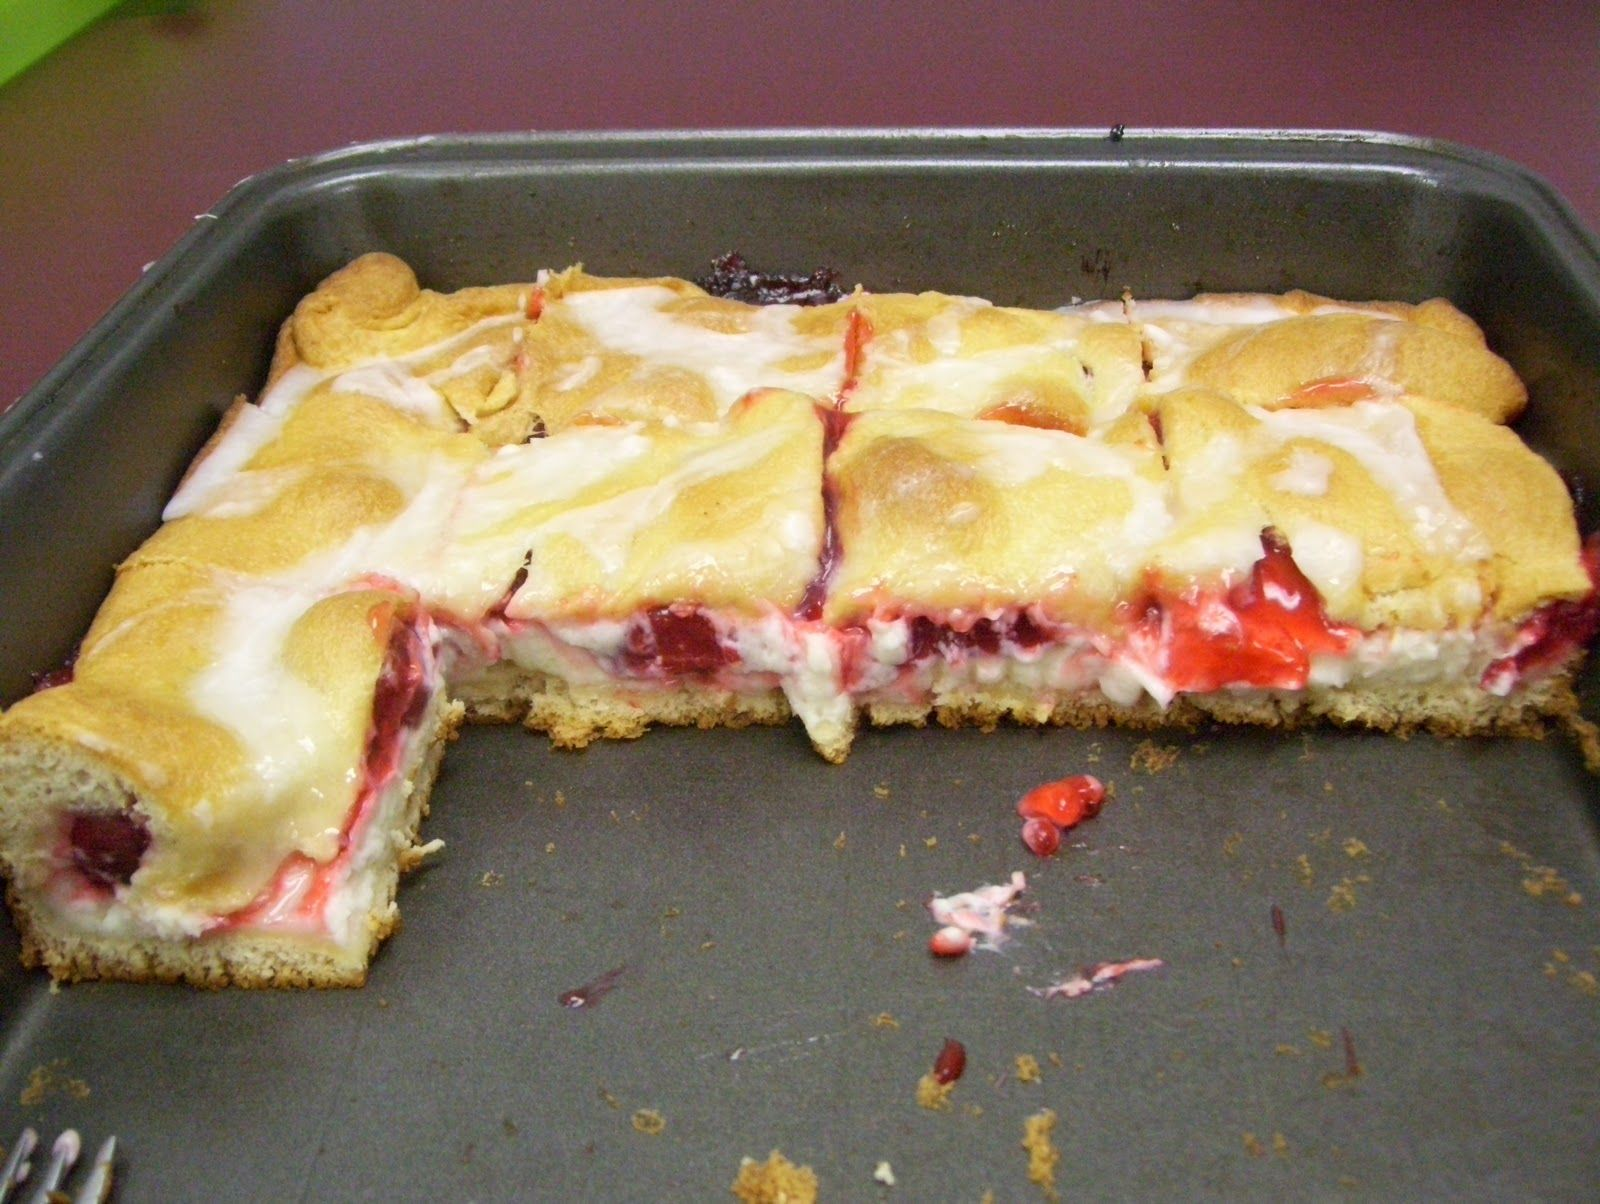 Cherry Danish Dessert Recipe : I made this last night, and we loved it!! It was easy to make, and just delicious!!